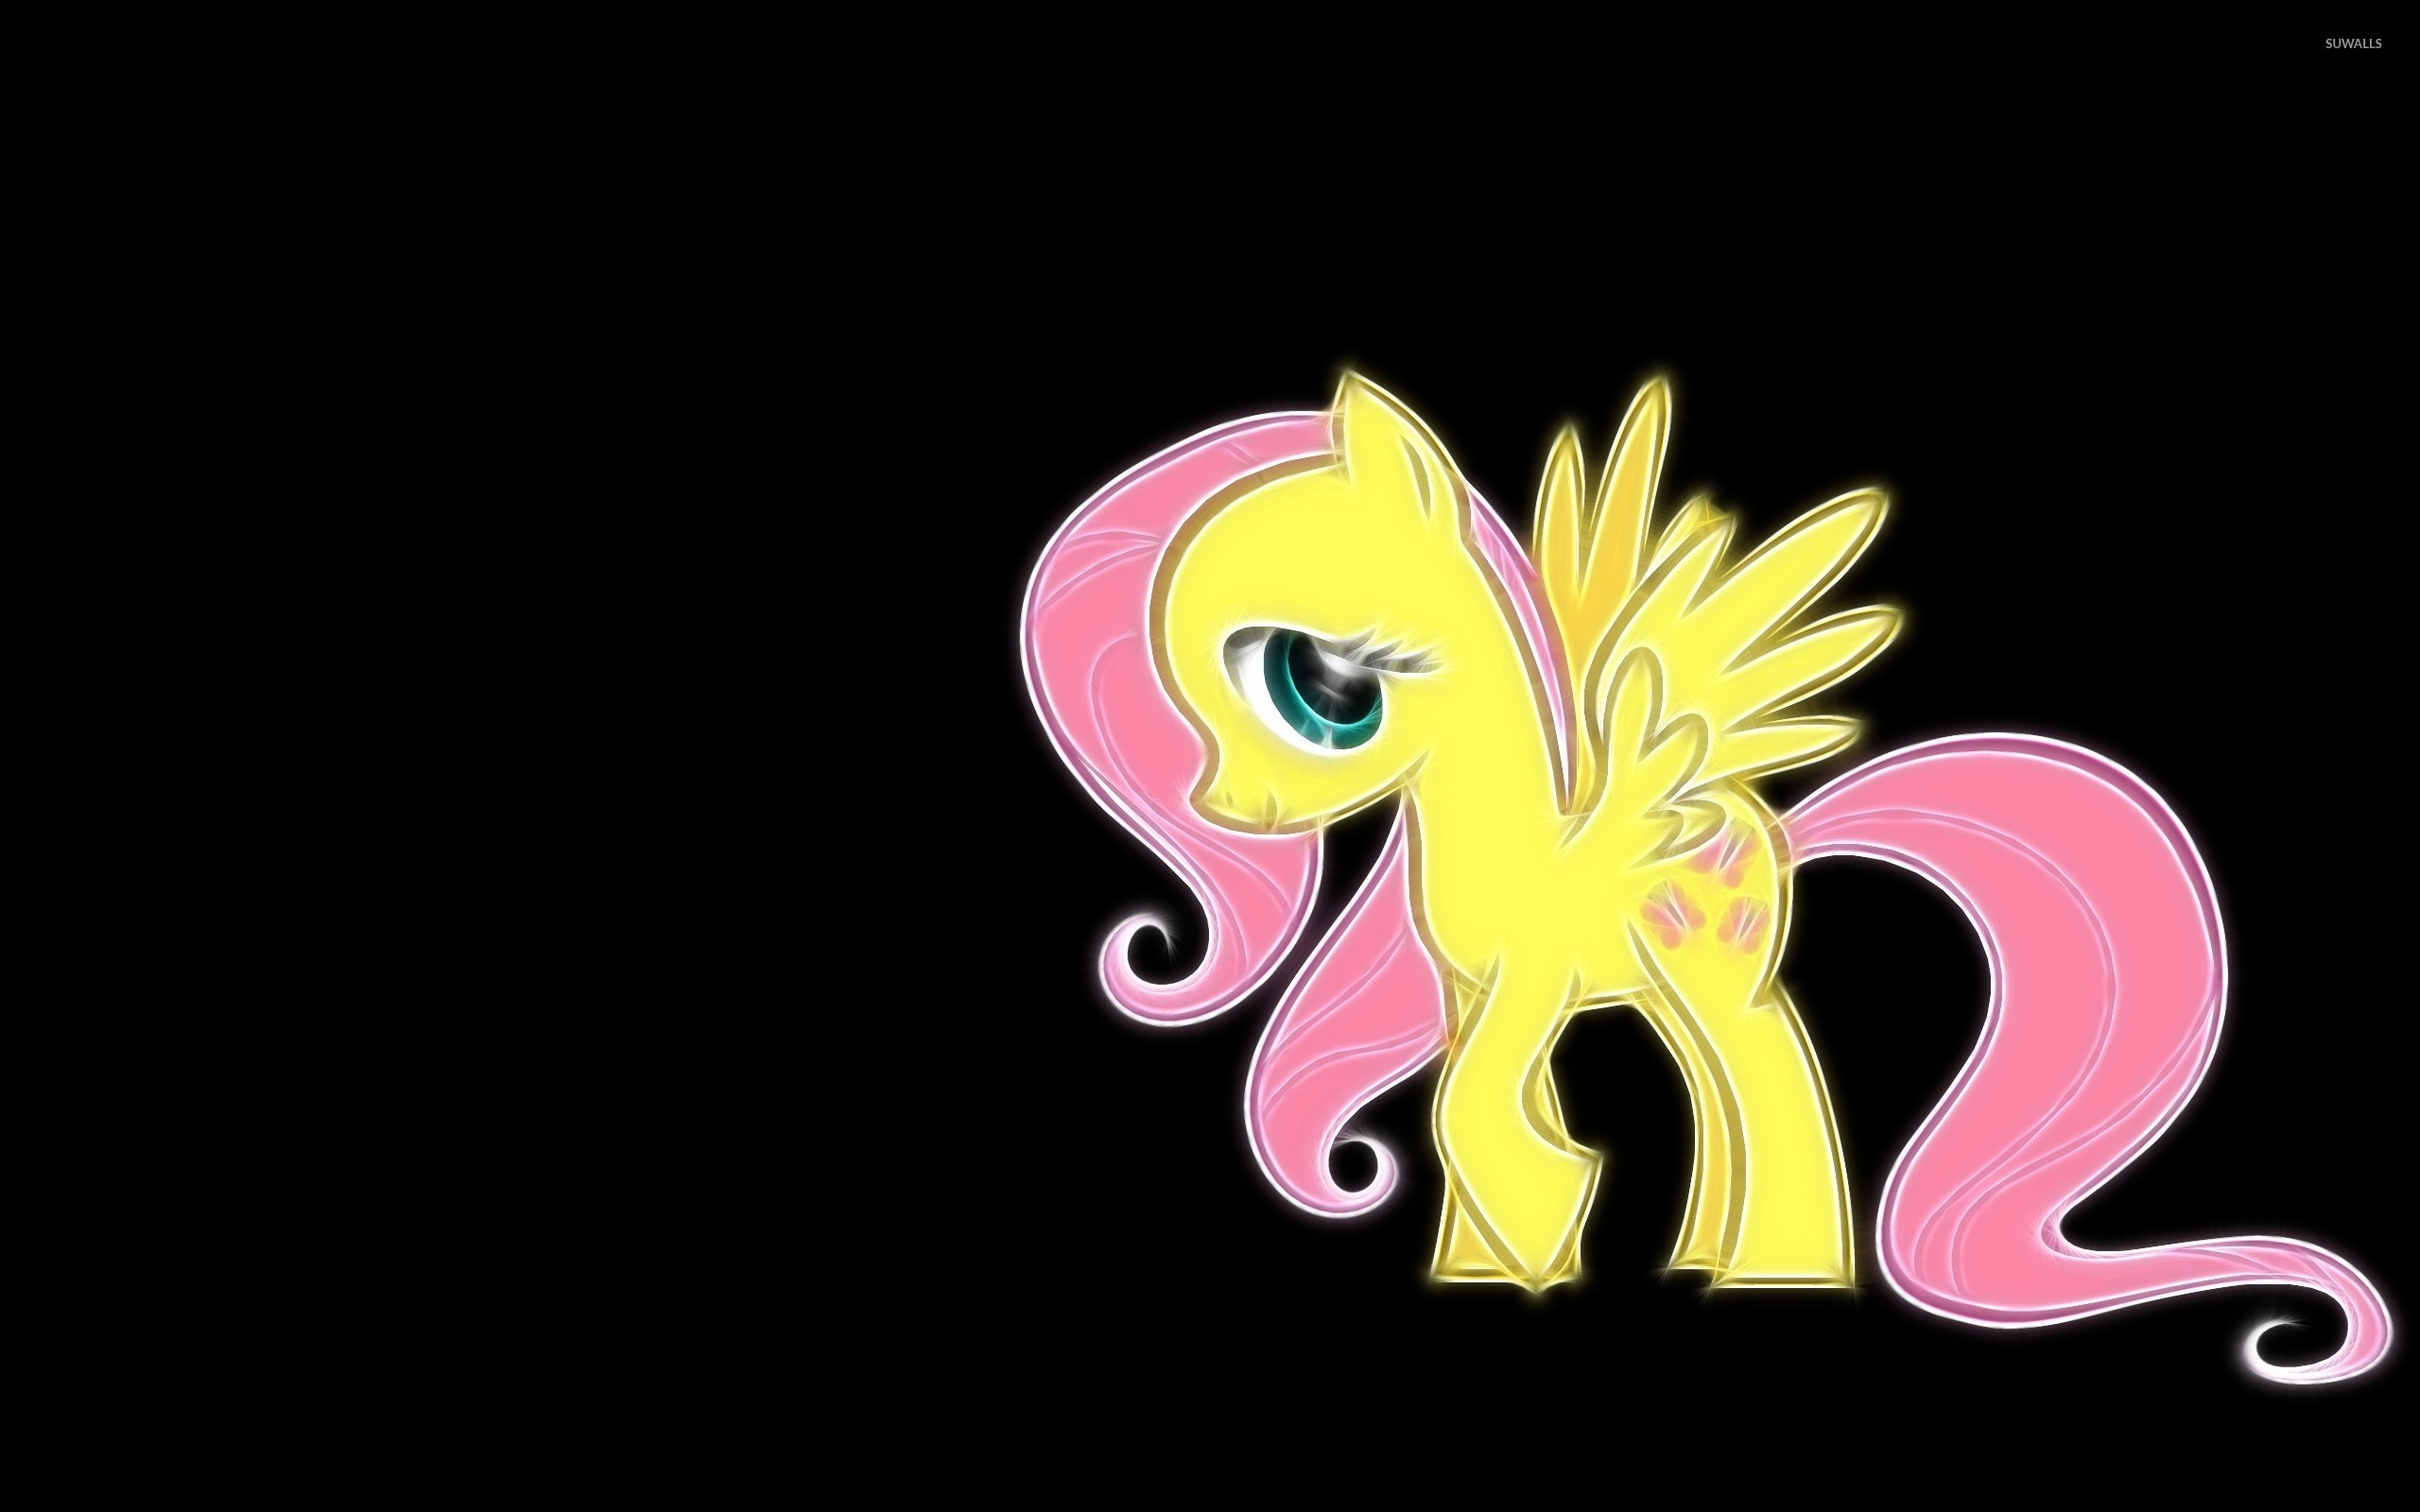 2560x1600 Fluttershy - My Little Pony: Friendship Is Magic wallpaper  jpg